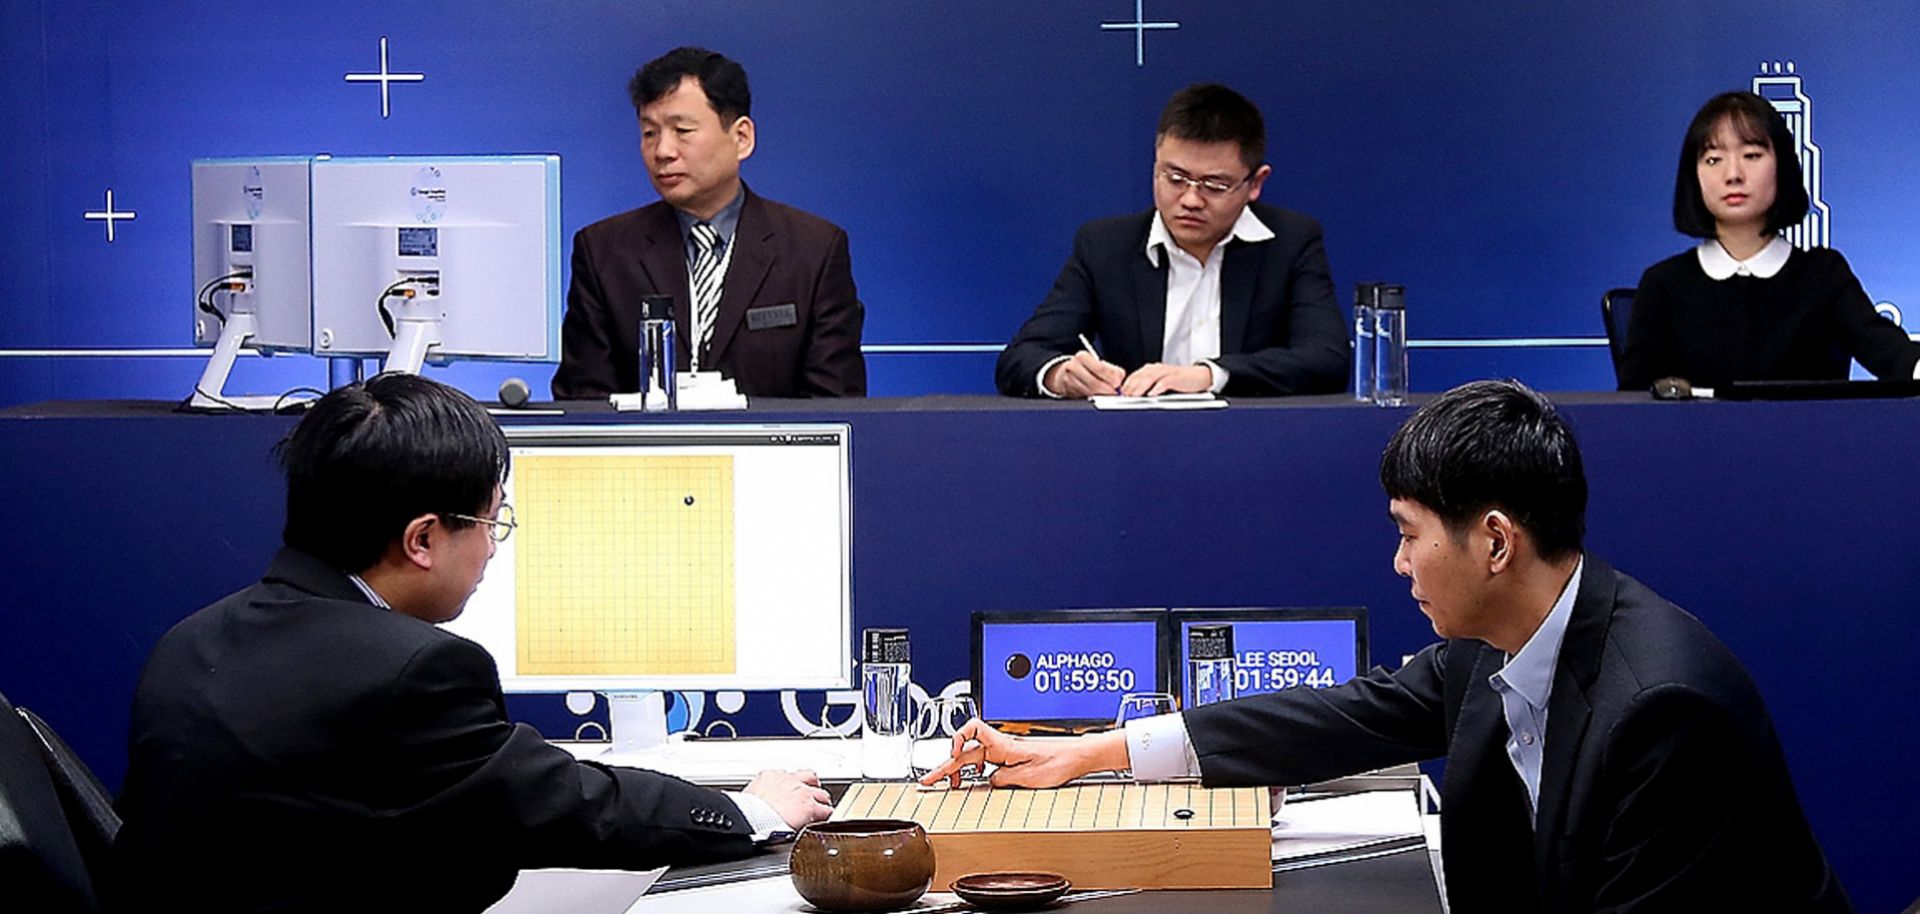 South Korean professional Go player Lee Sedol (R) puts his first stone in a match against Google artificial intelligence program AlphaGo, which eventually won four of five games.